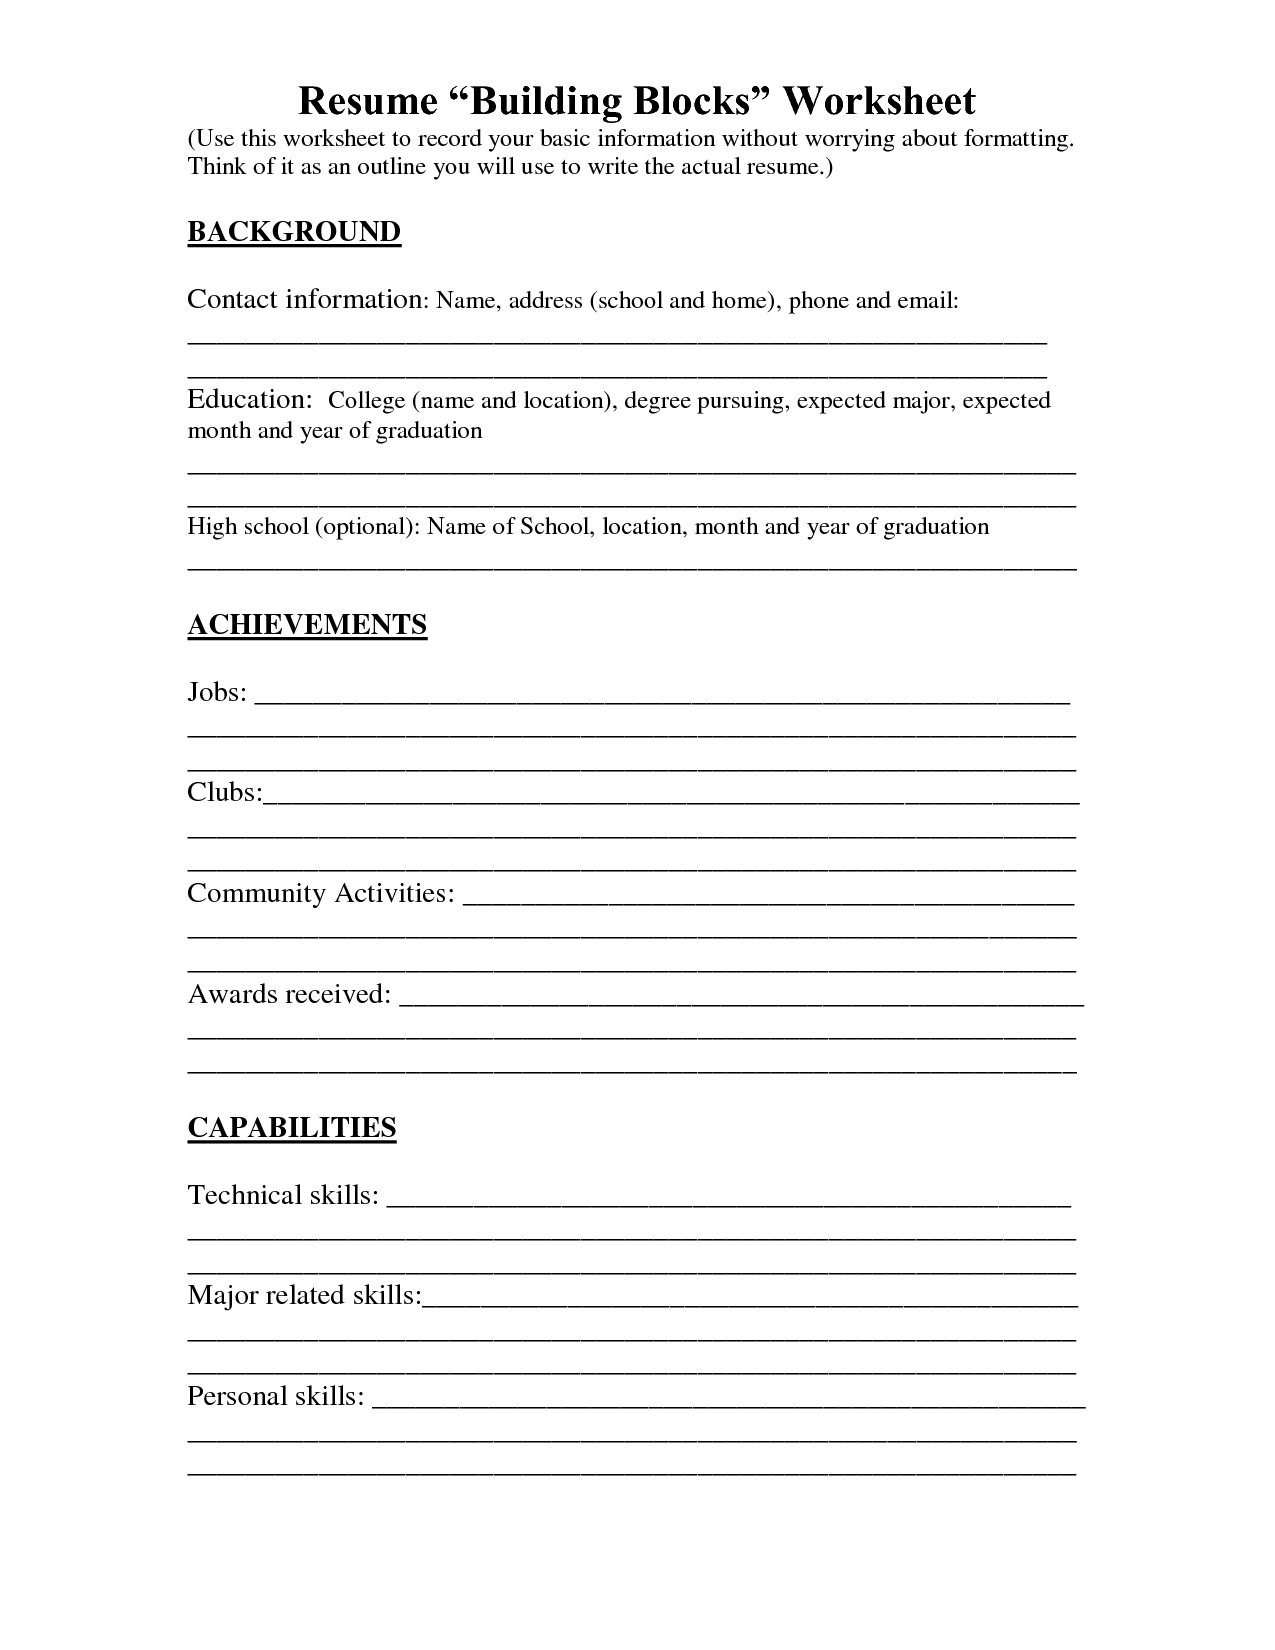 resume fill out sheet